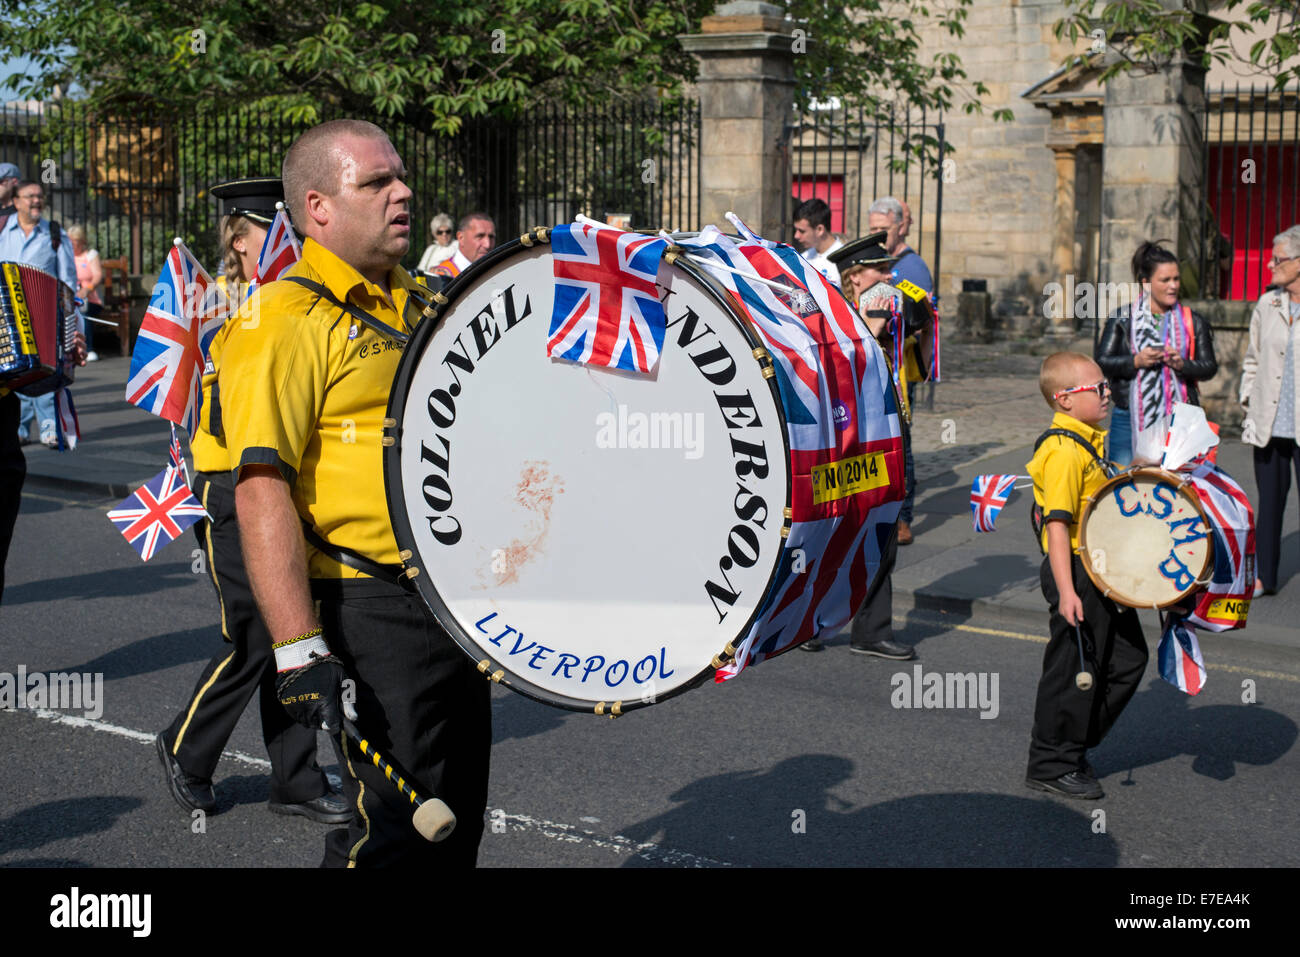 A loyalist band takes part in a pro-union rally in Edinburgh during the run up to the referendum on Scottish independence. - Stock Image